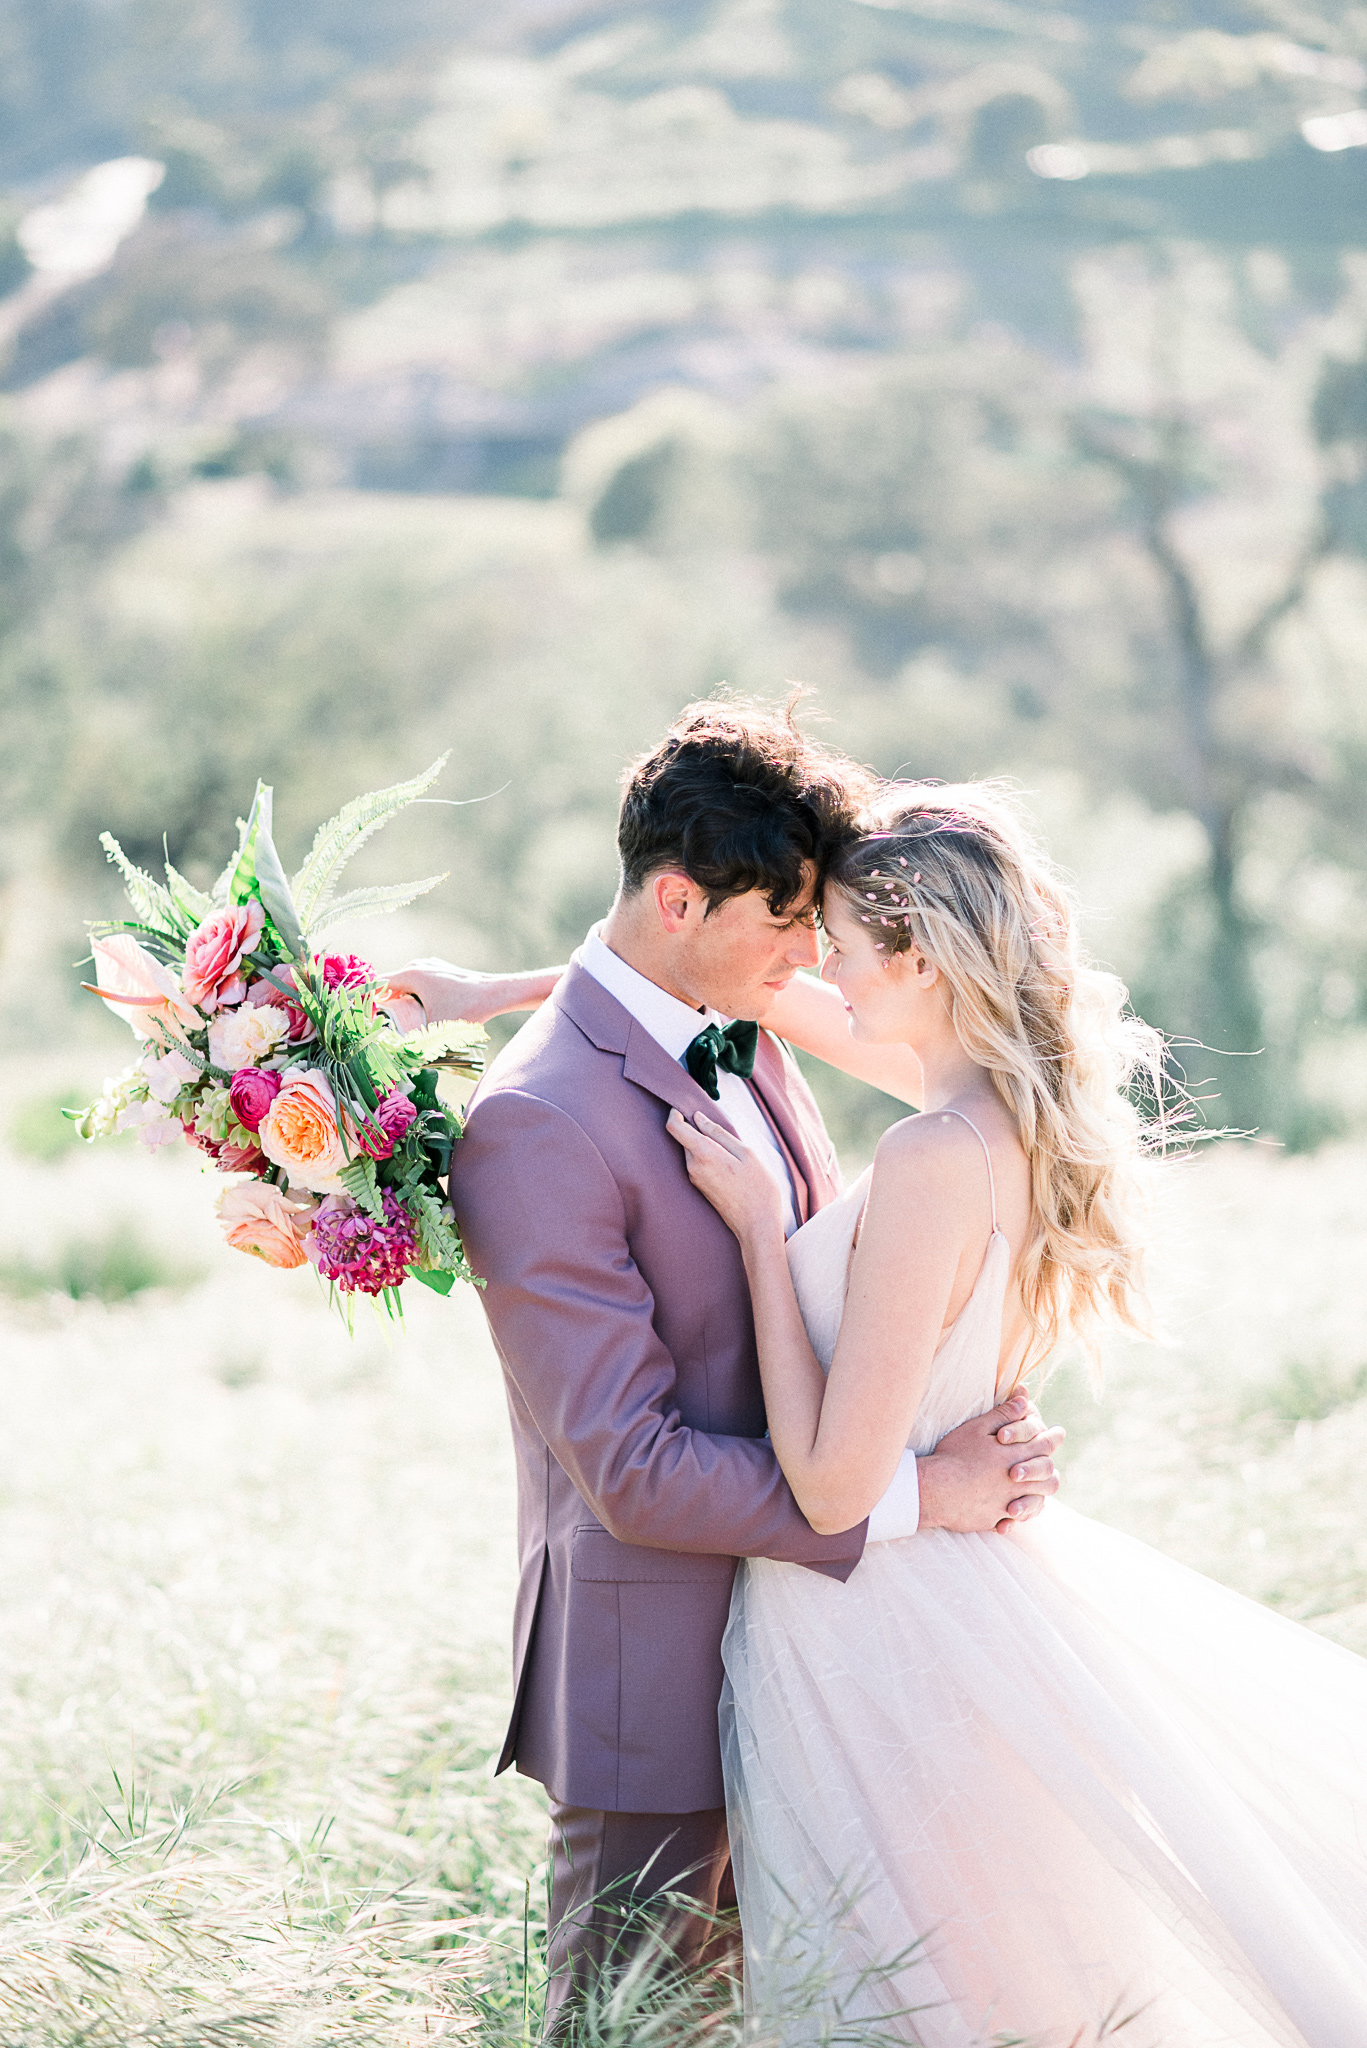 emerald-peak-temecula-wedding-bride-and-groom-touching-heads-bride-in-a-blush-tulle-gown-with-straps-groom-in-a-rose-pink-suit-with-a-green-velvet-bow-tie